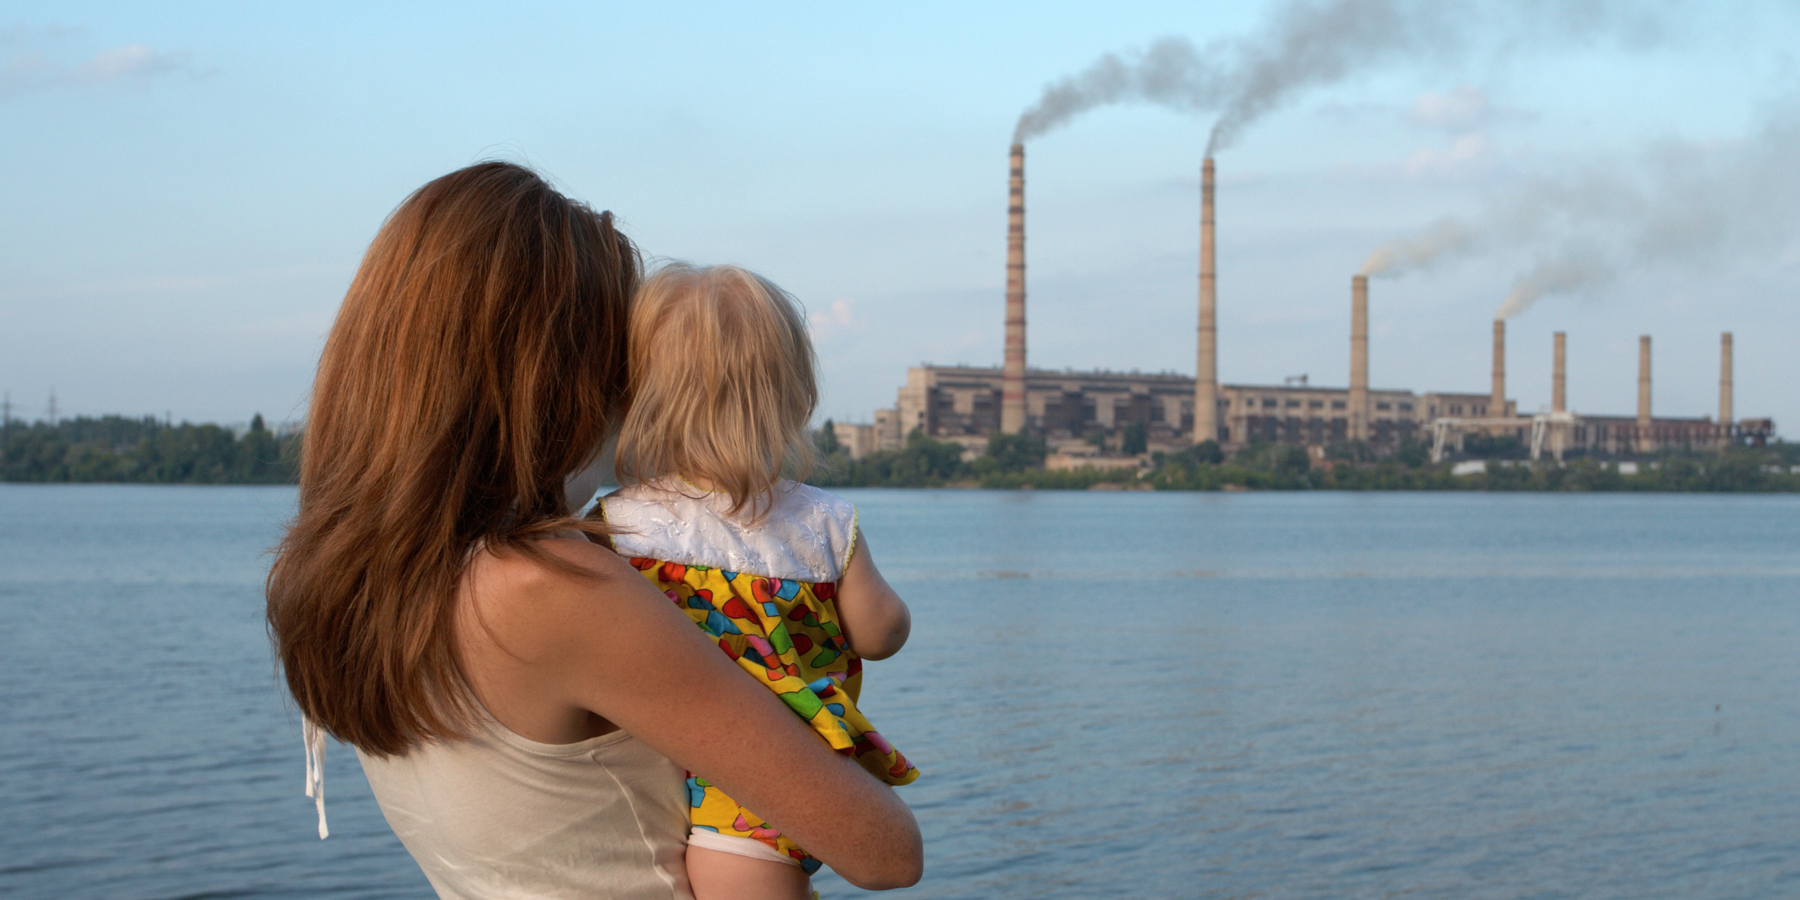 Does Air Pollution Affect Mental Health Later in Life?